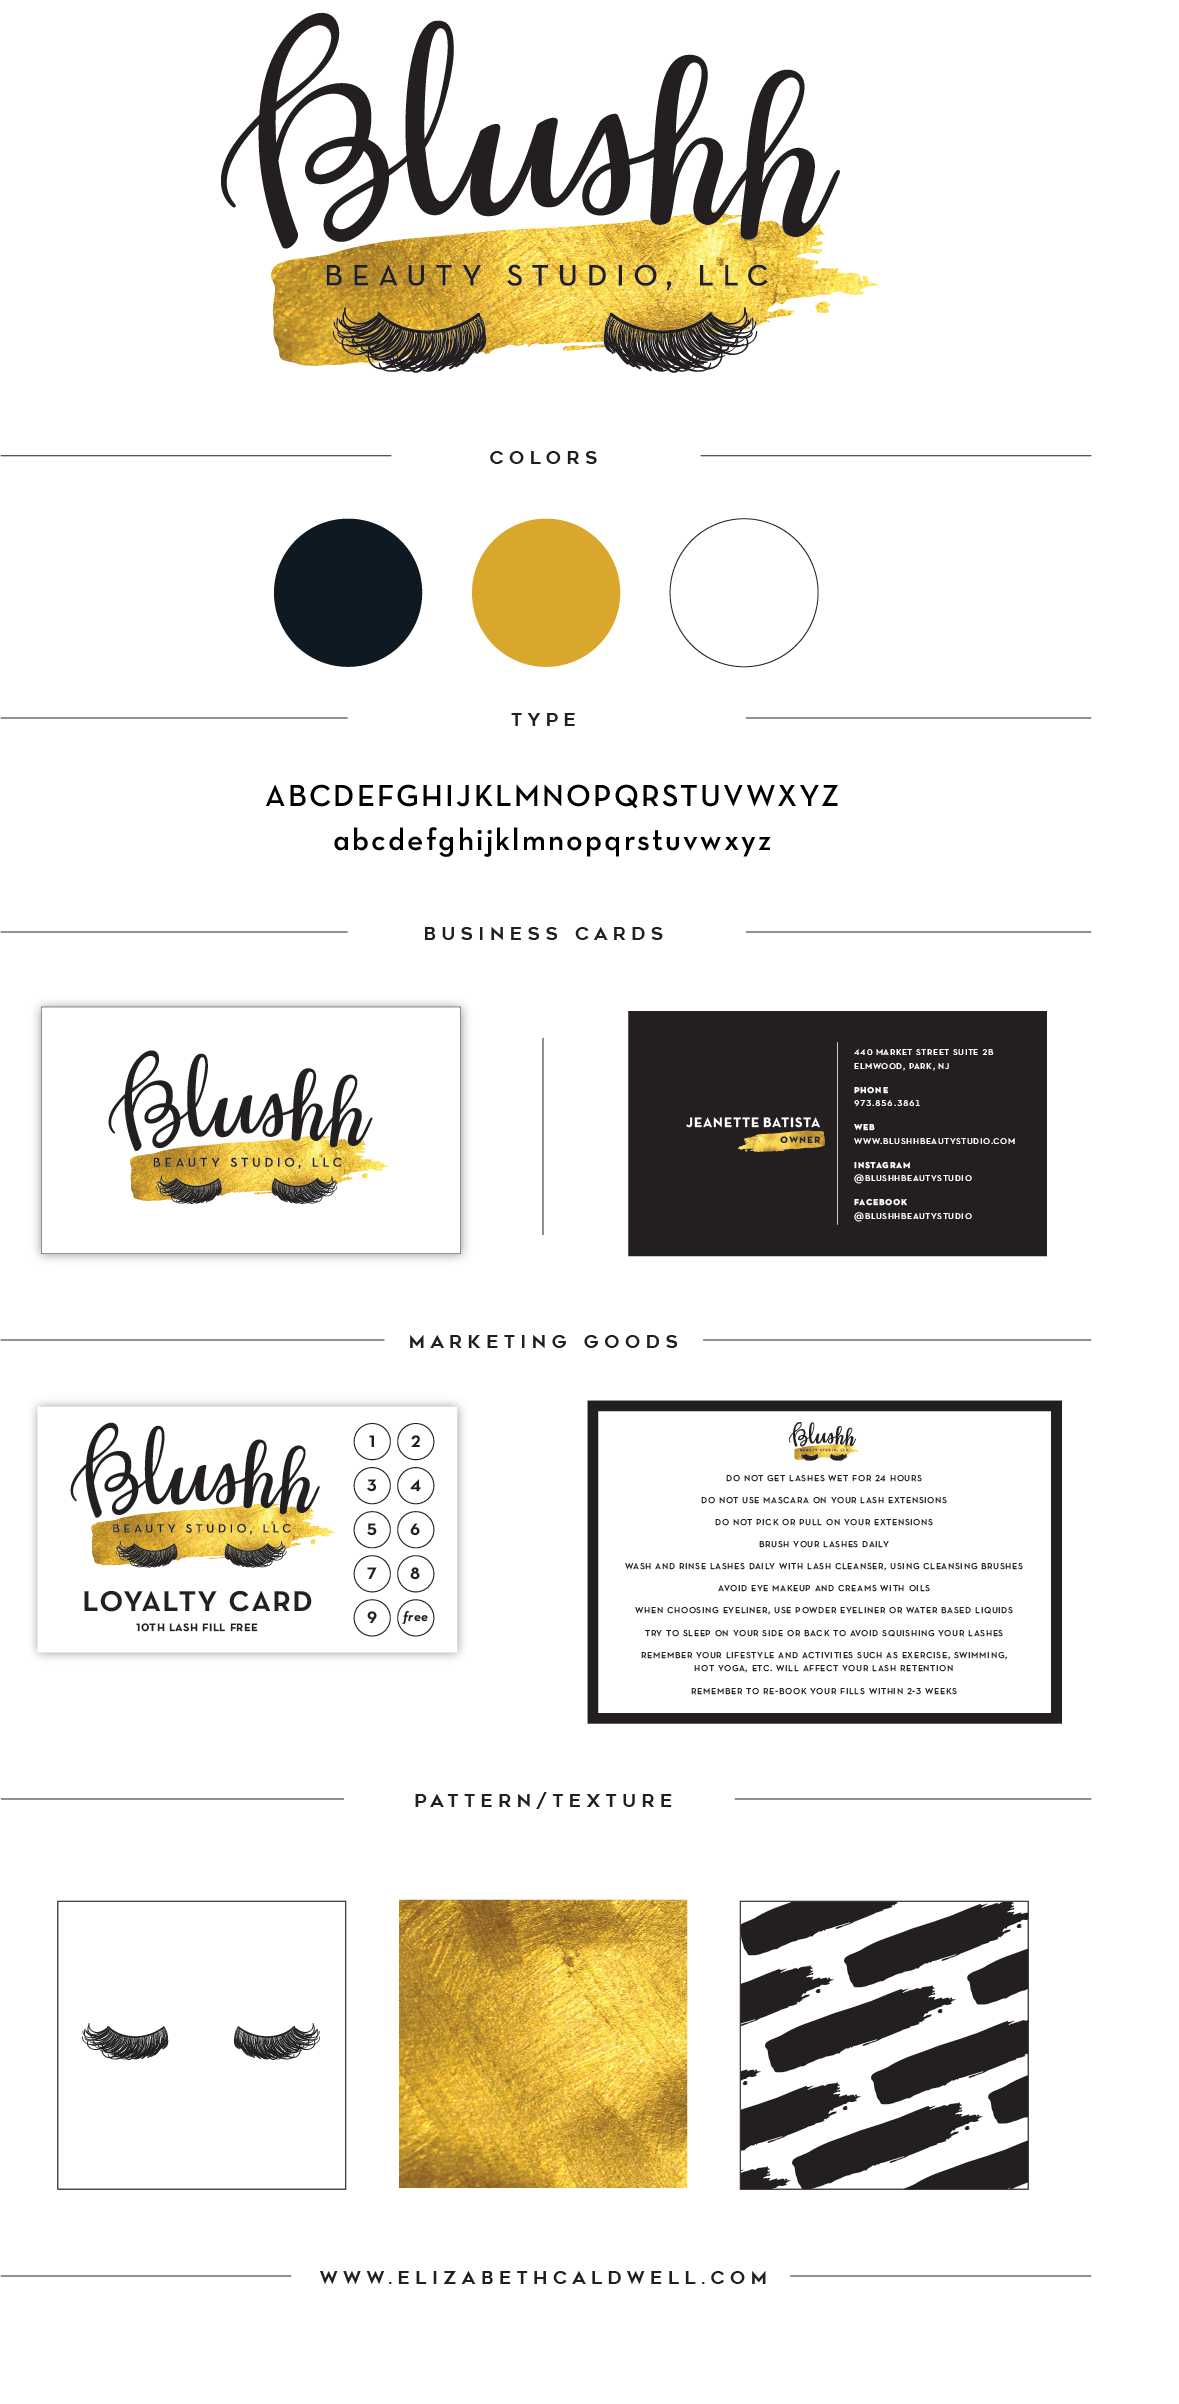 BlushhBeauty_StyleGuide.png